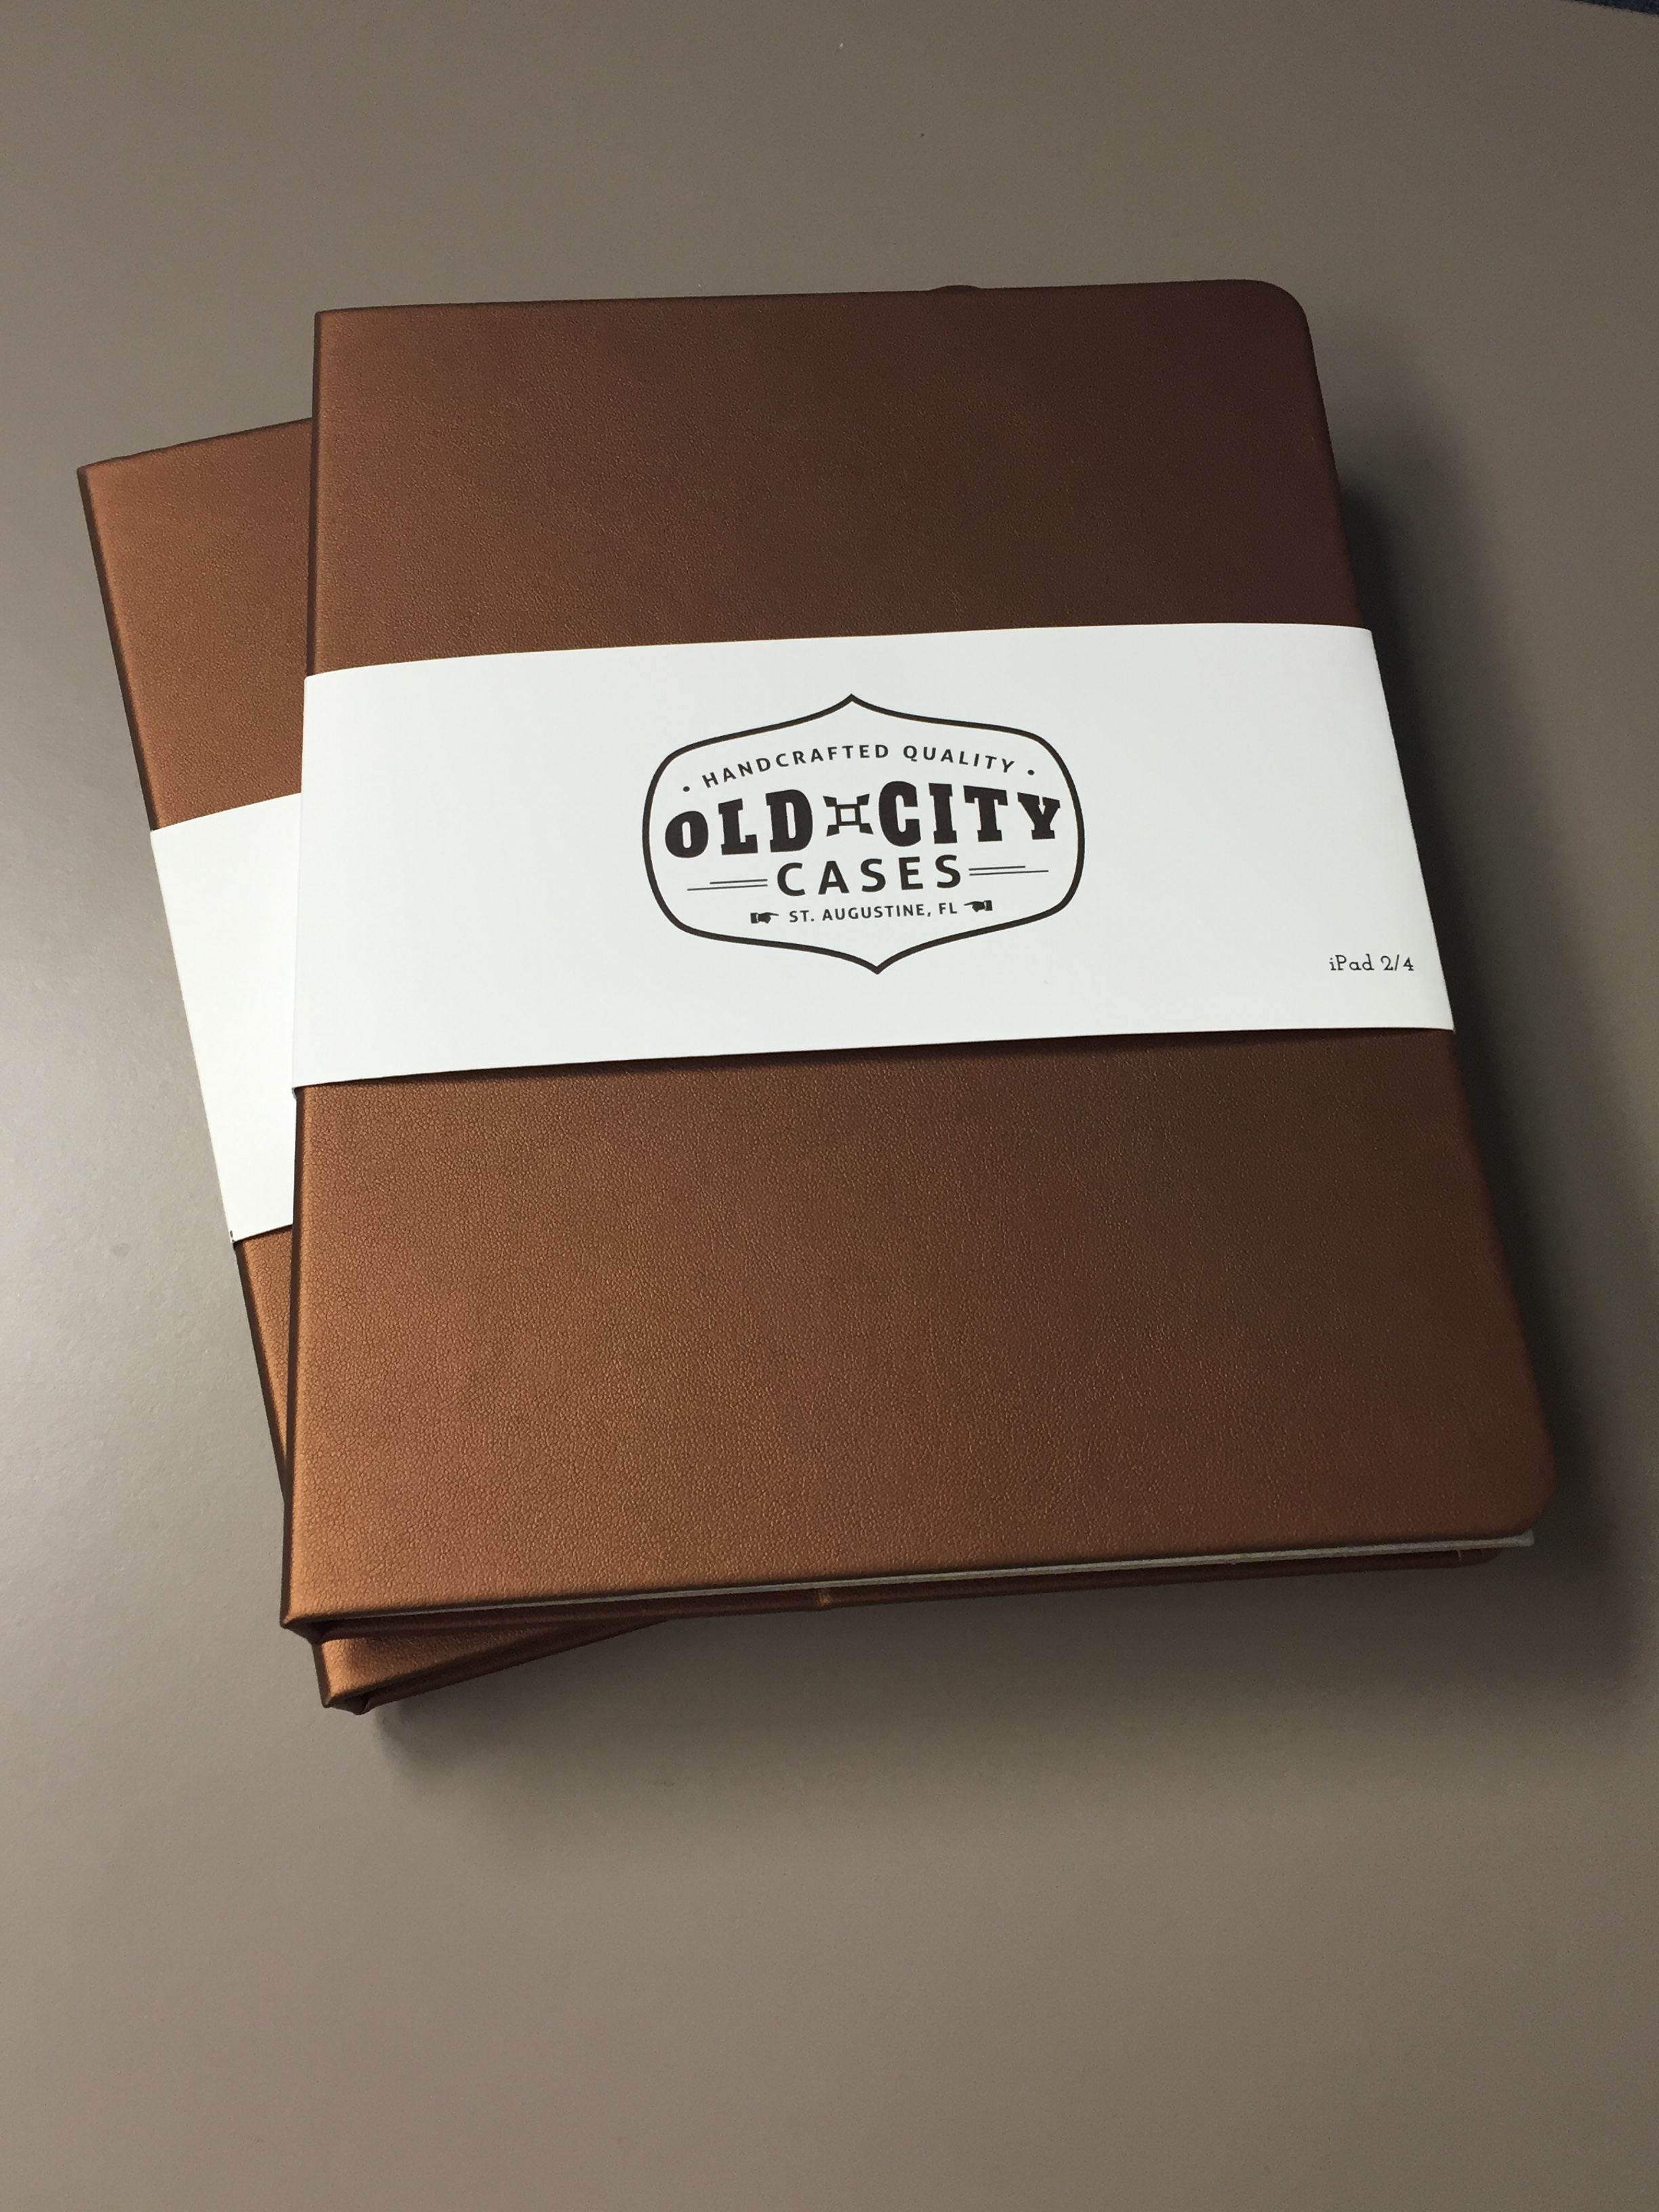 iPad Case by Old City Cases